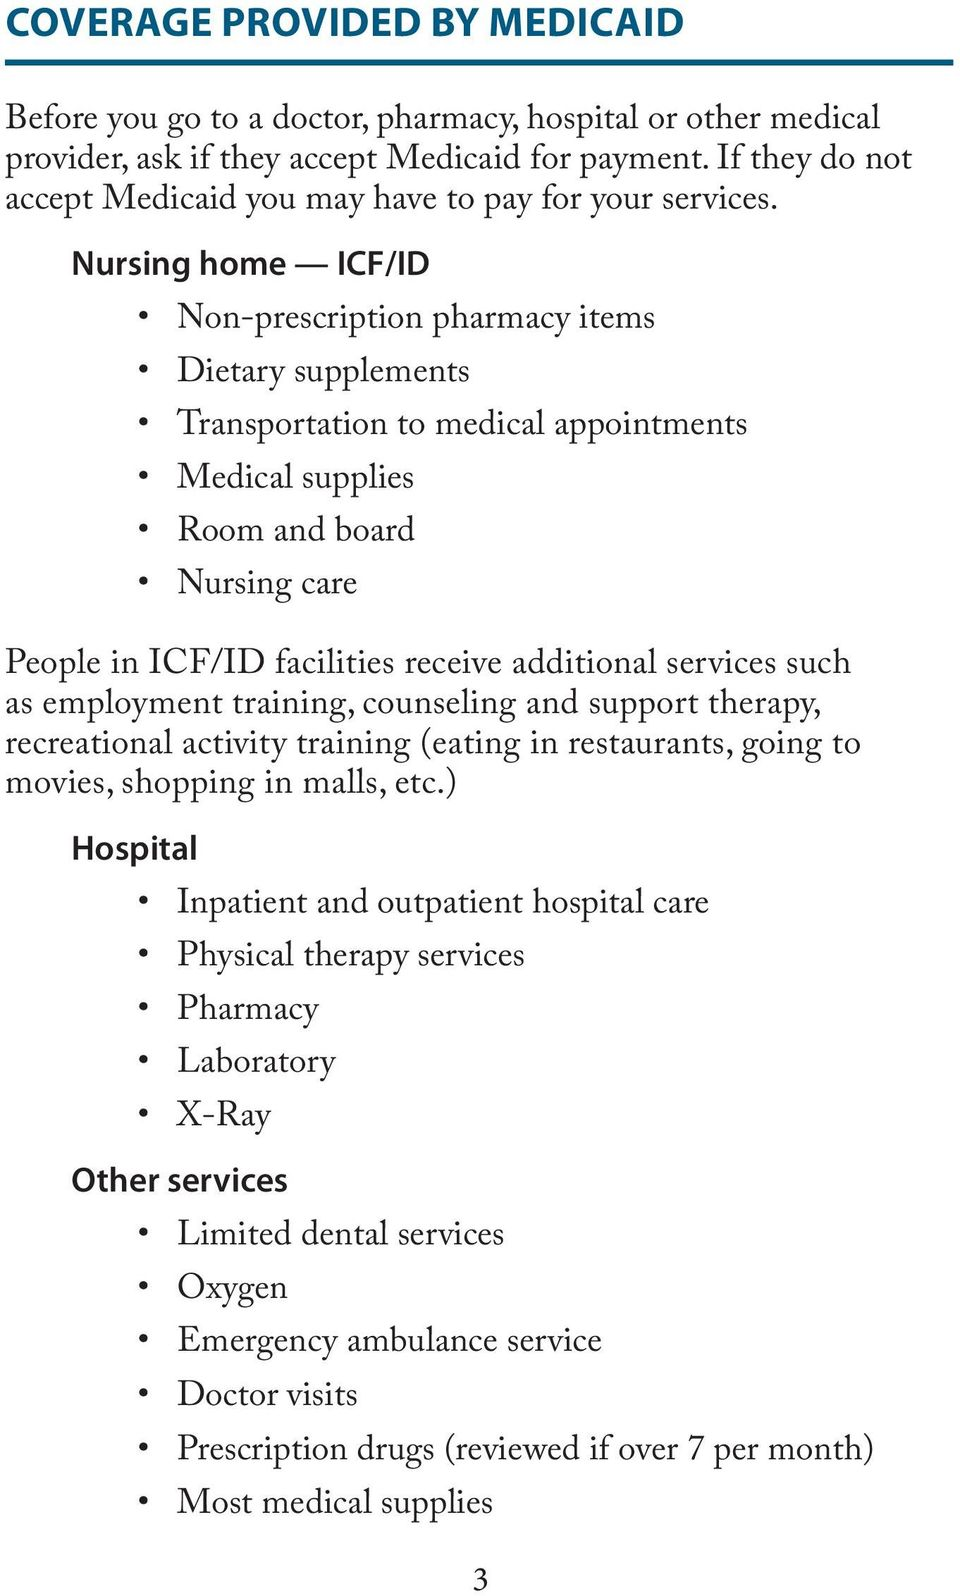 Nursing home ICF/ID Non-prescription pharmacy items Dietary supplements Transportation to medical appointments Medical supplies Room and board Nursing care People in ICF/ID facilities receive